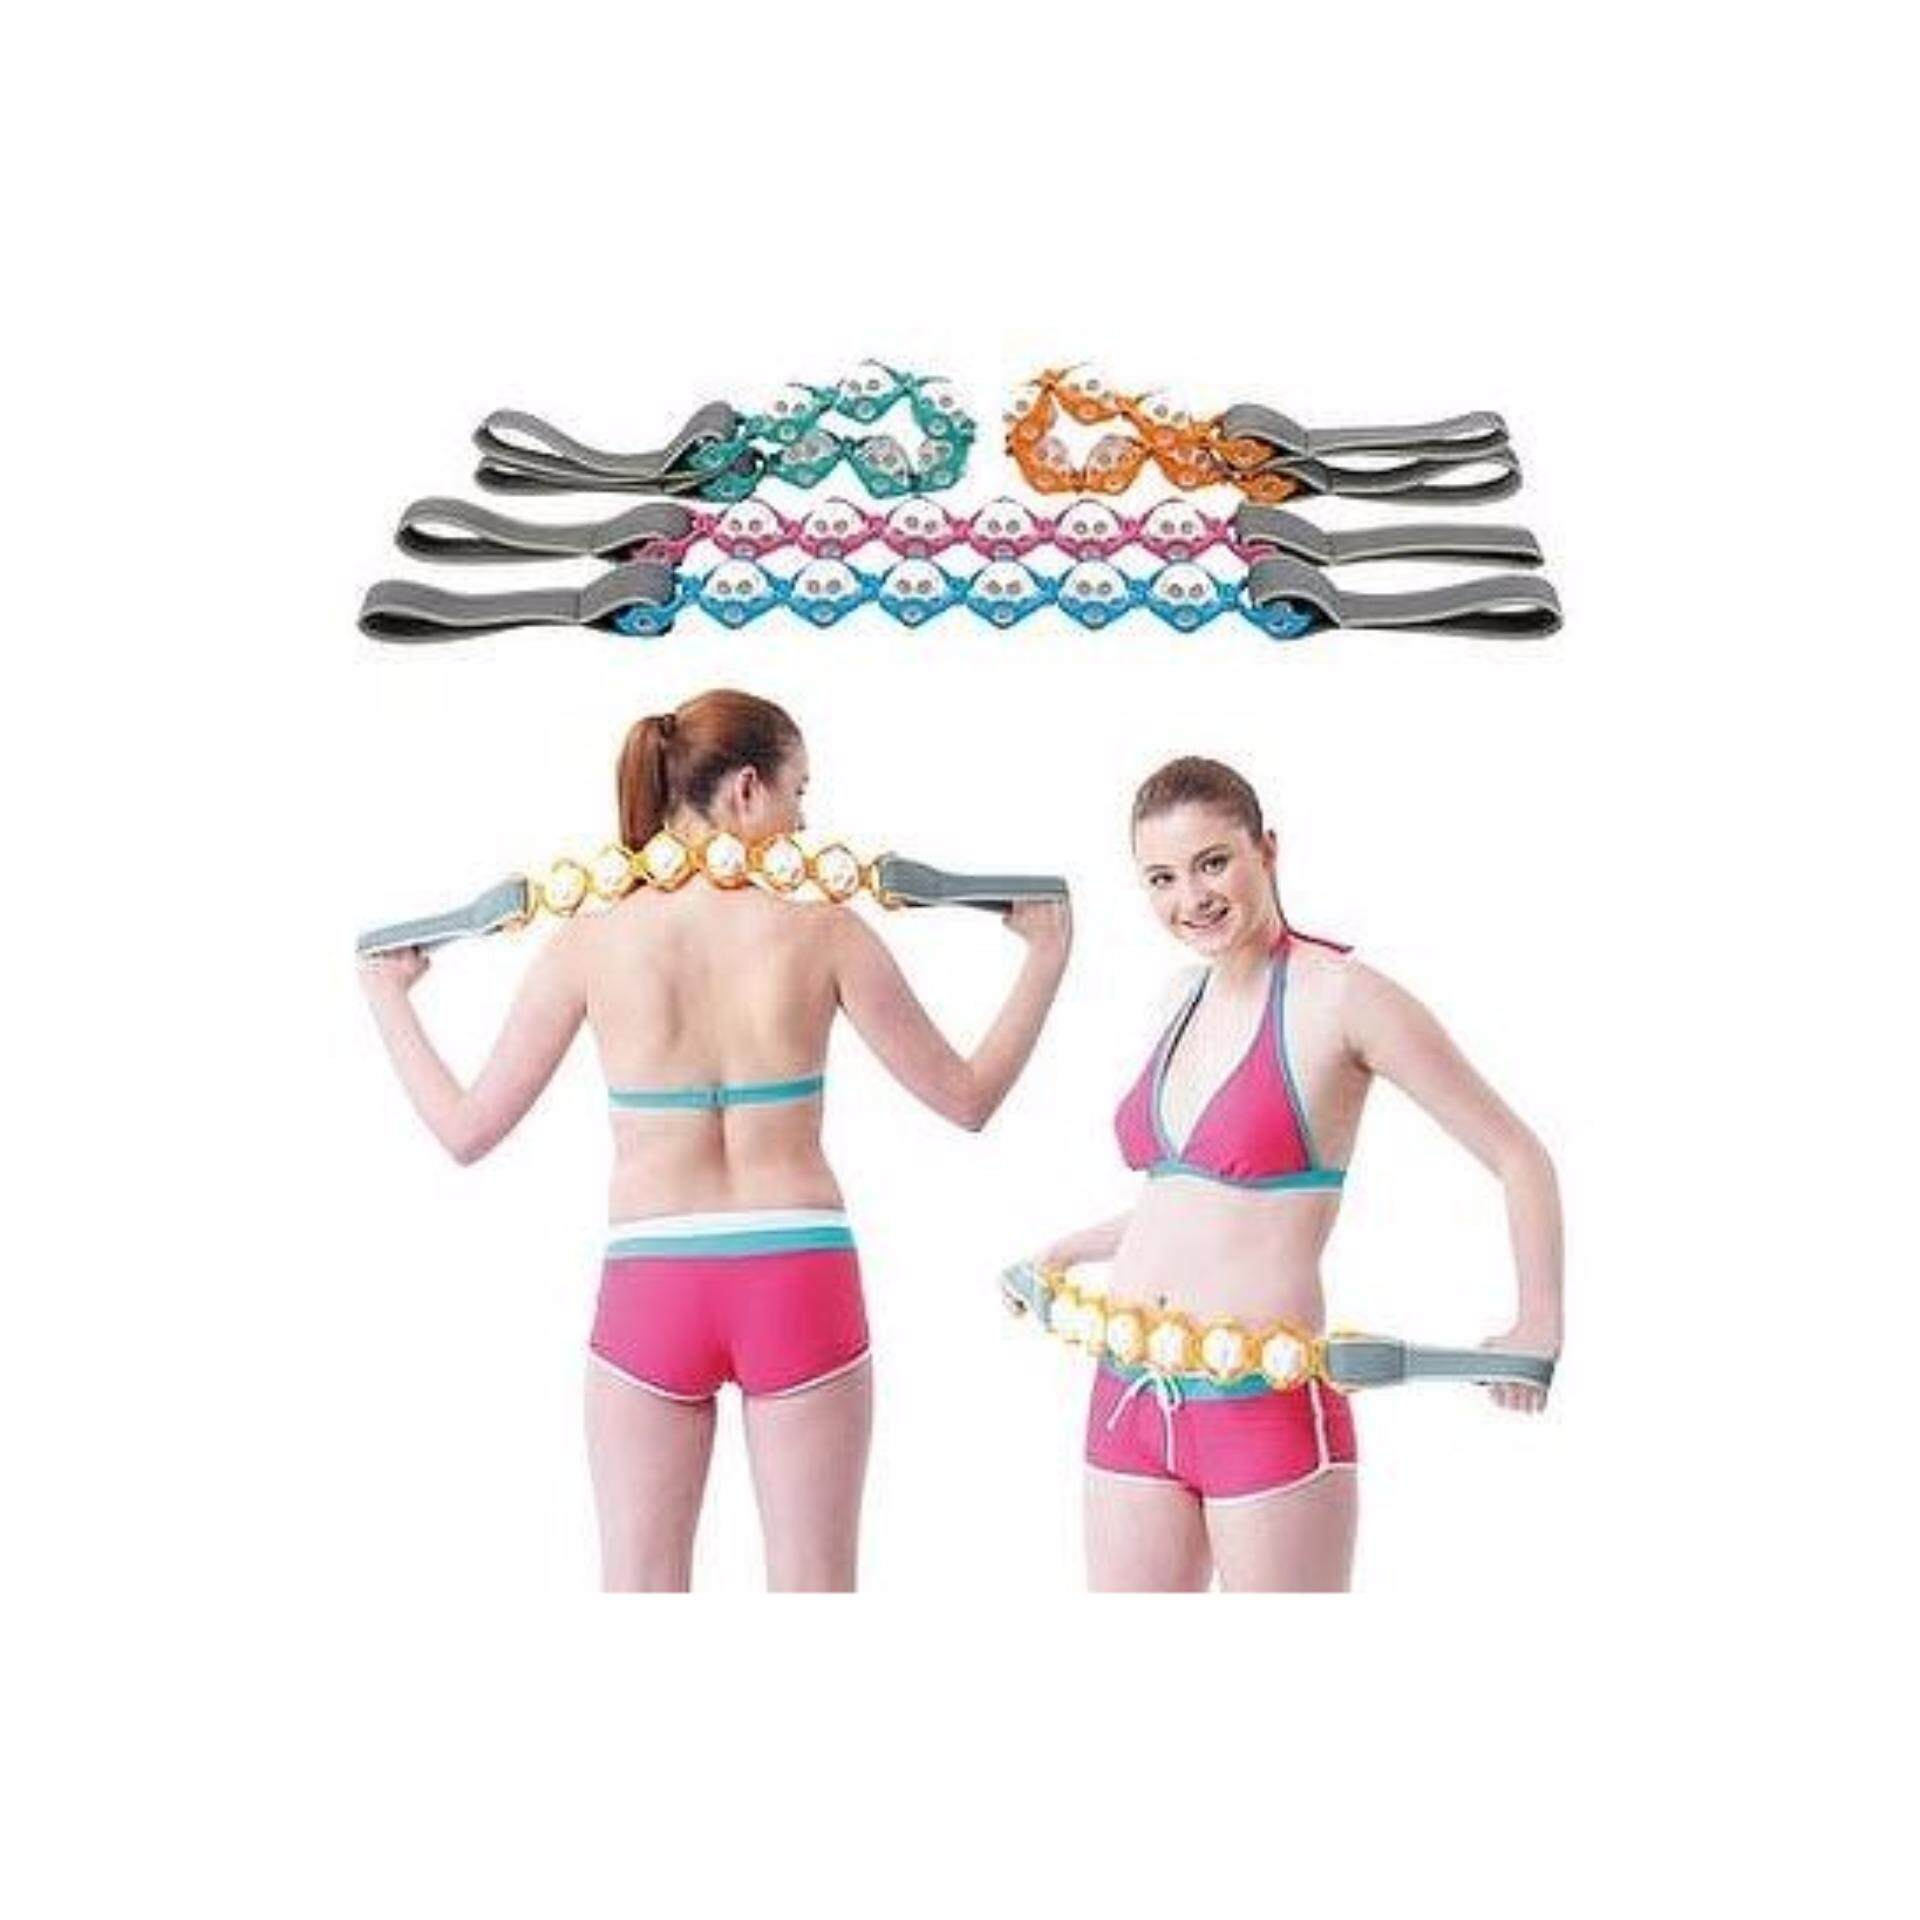 (Blue Colour)Massage Rope Yoga Roller Belt for Slimming, Anti Cellulite, Circulation, Exercise & Relieve Sore Muscles Aches and Pains